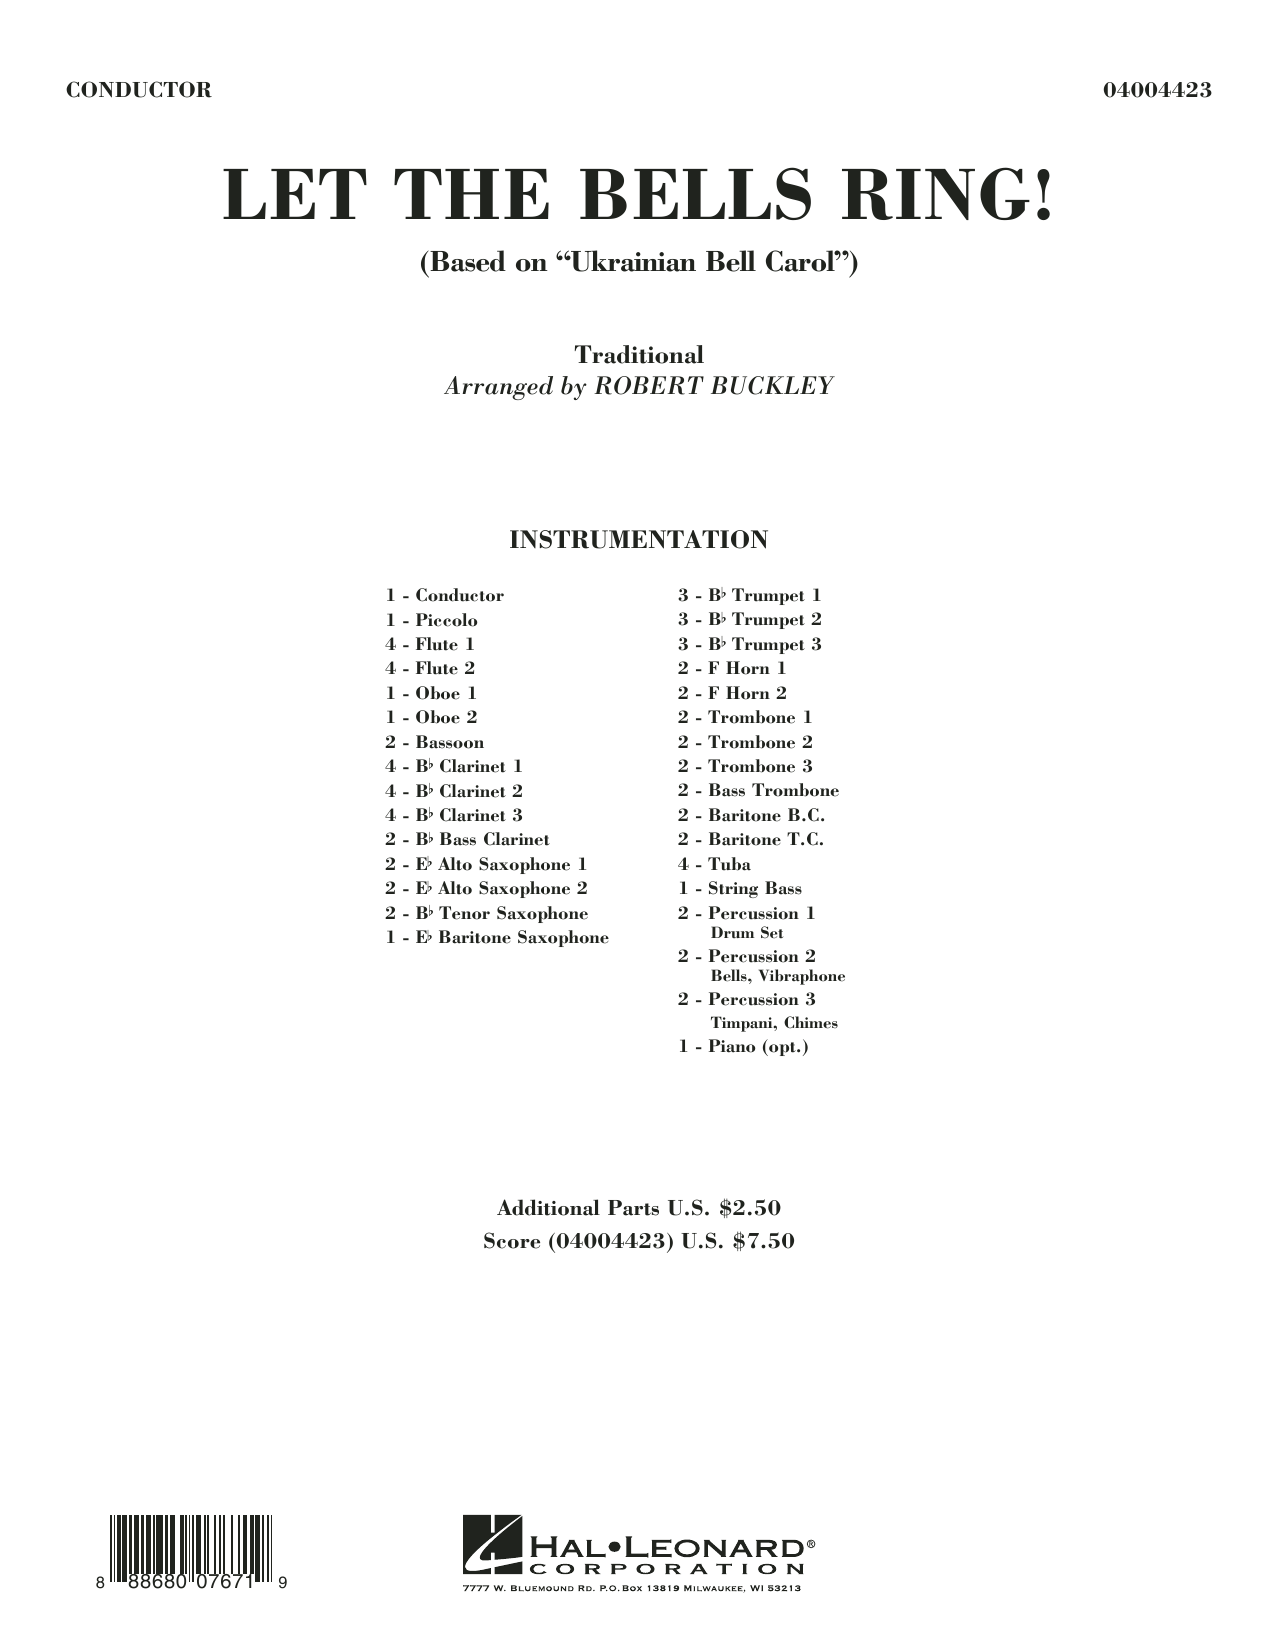 Let the Bells Ring! - Conductor Score (Full Score) (Concert Band)